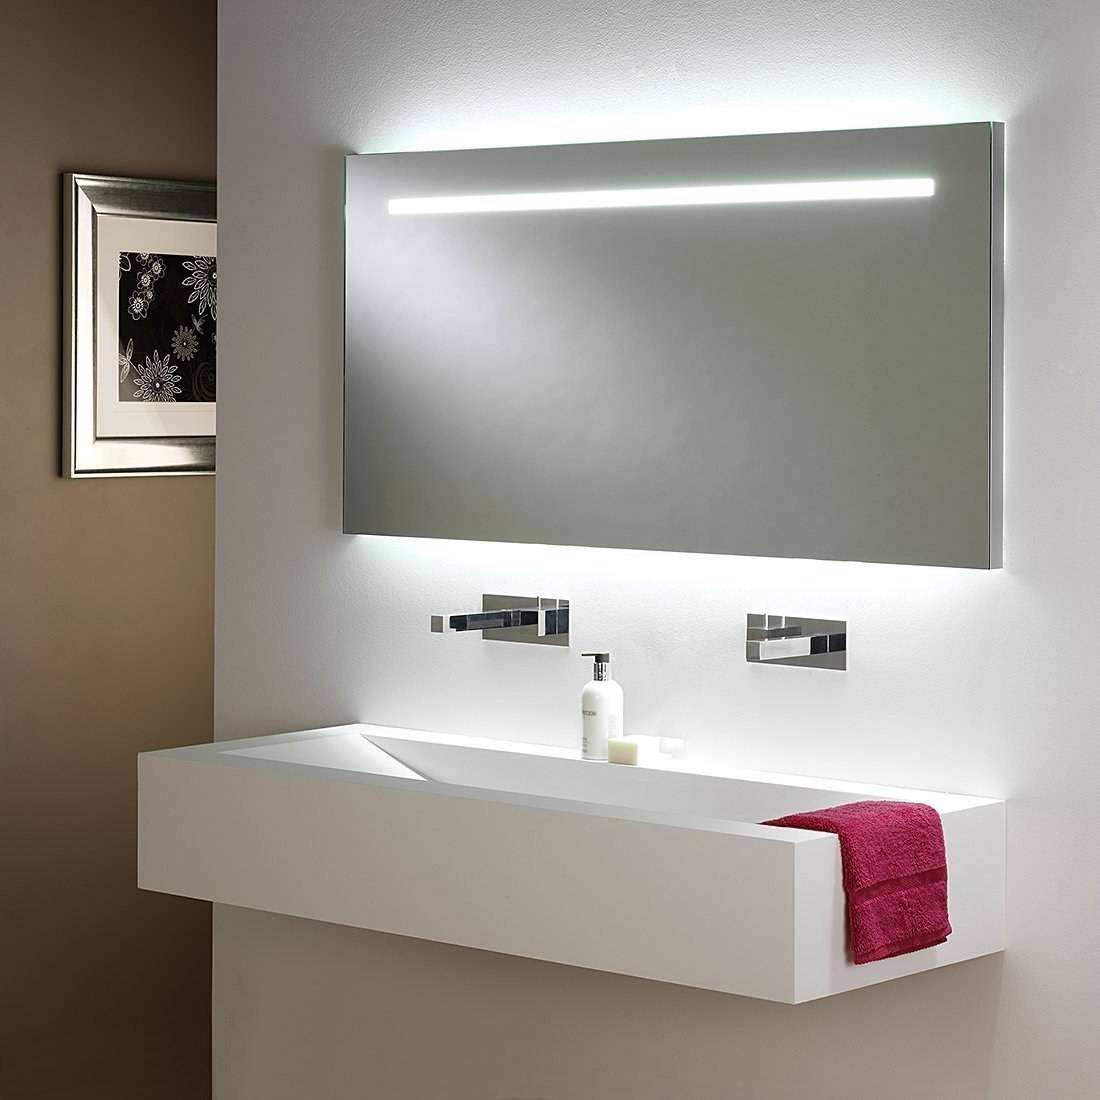 Amusing Large Illuminated Bathroom Mirror Design Ideas Led Round with Large Illuminated Mirrors (Image 1 of 15)